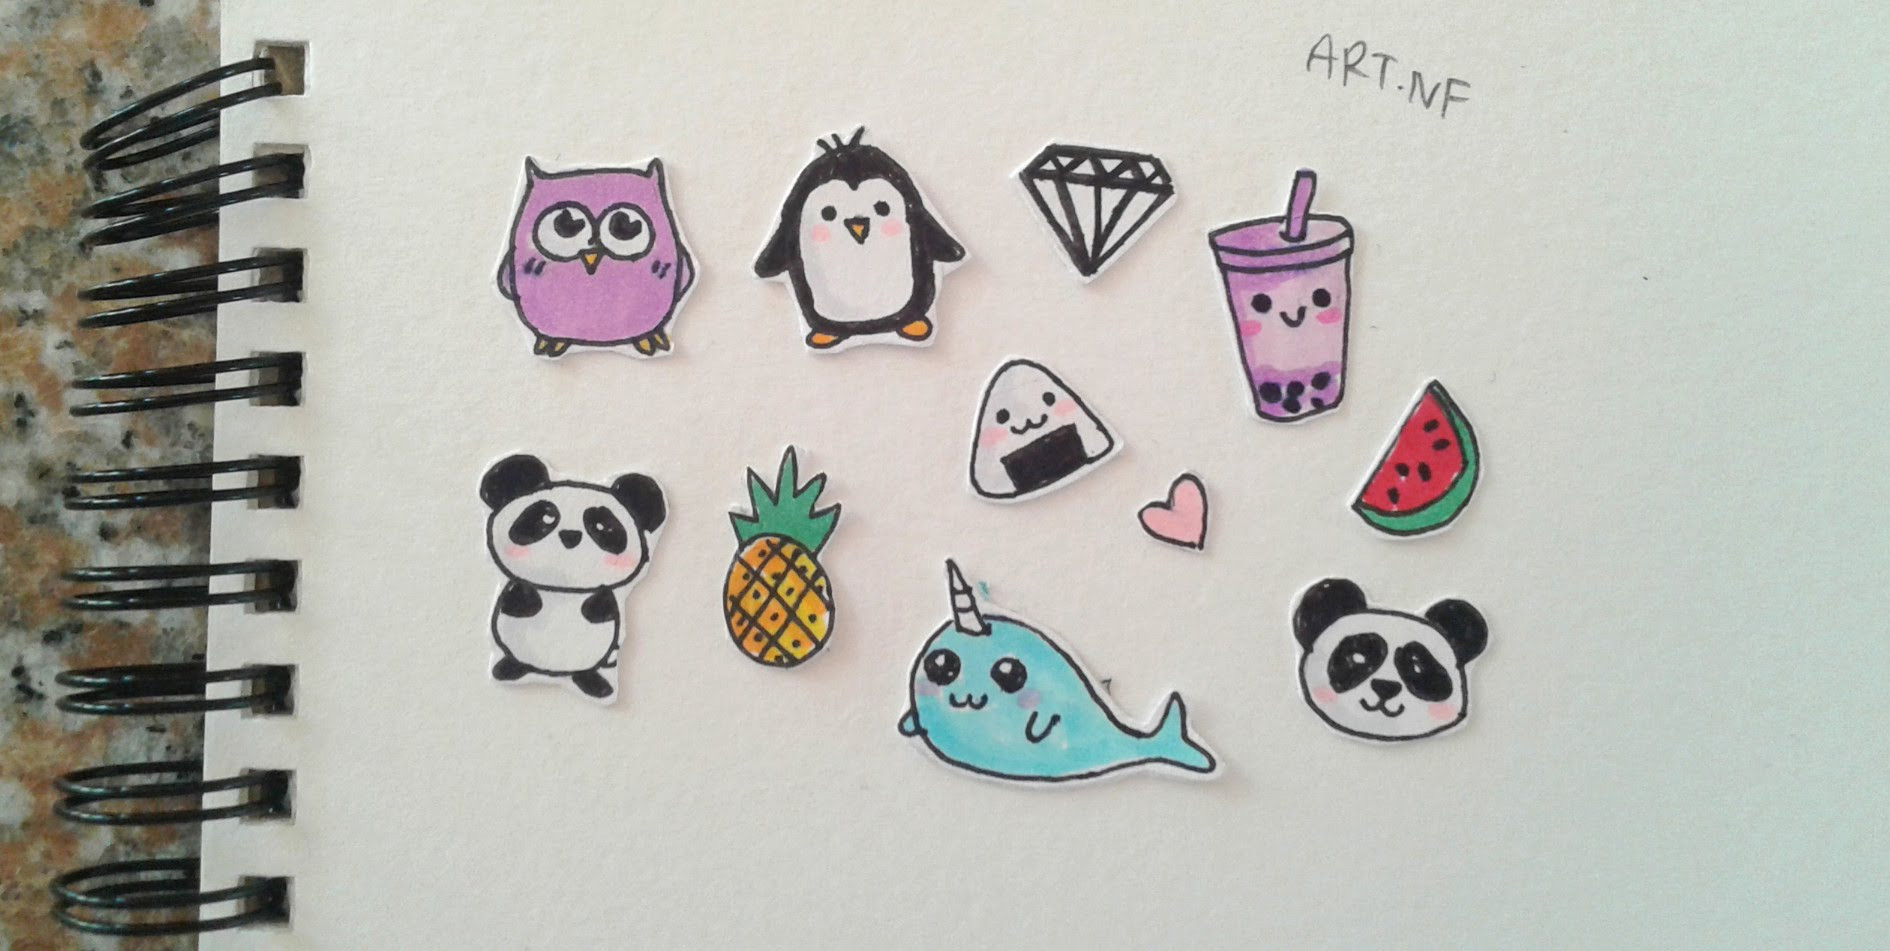 Sticker Diy  Showcase your Personality 15 Fun DIY Sticker Crafts